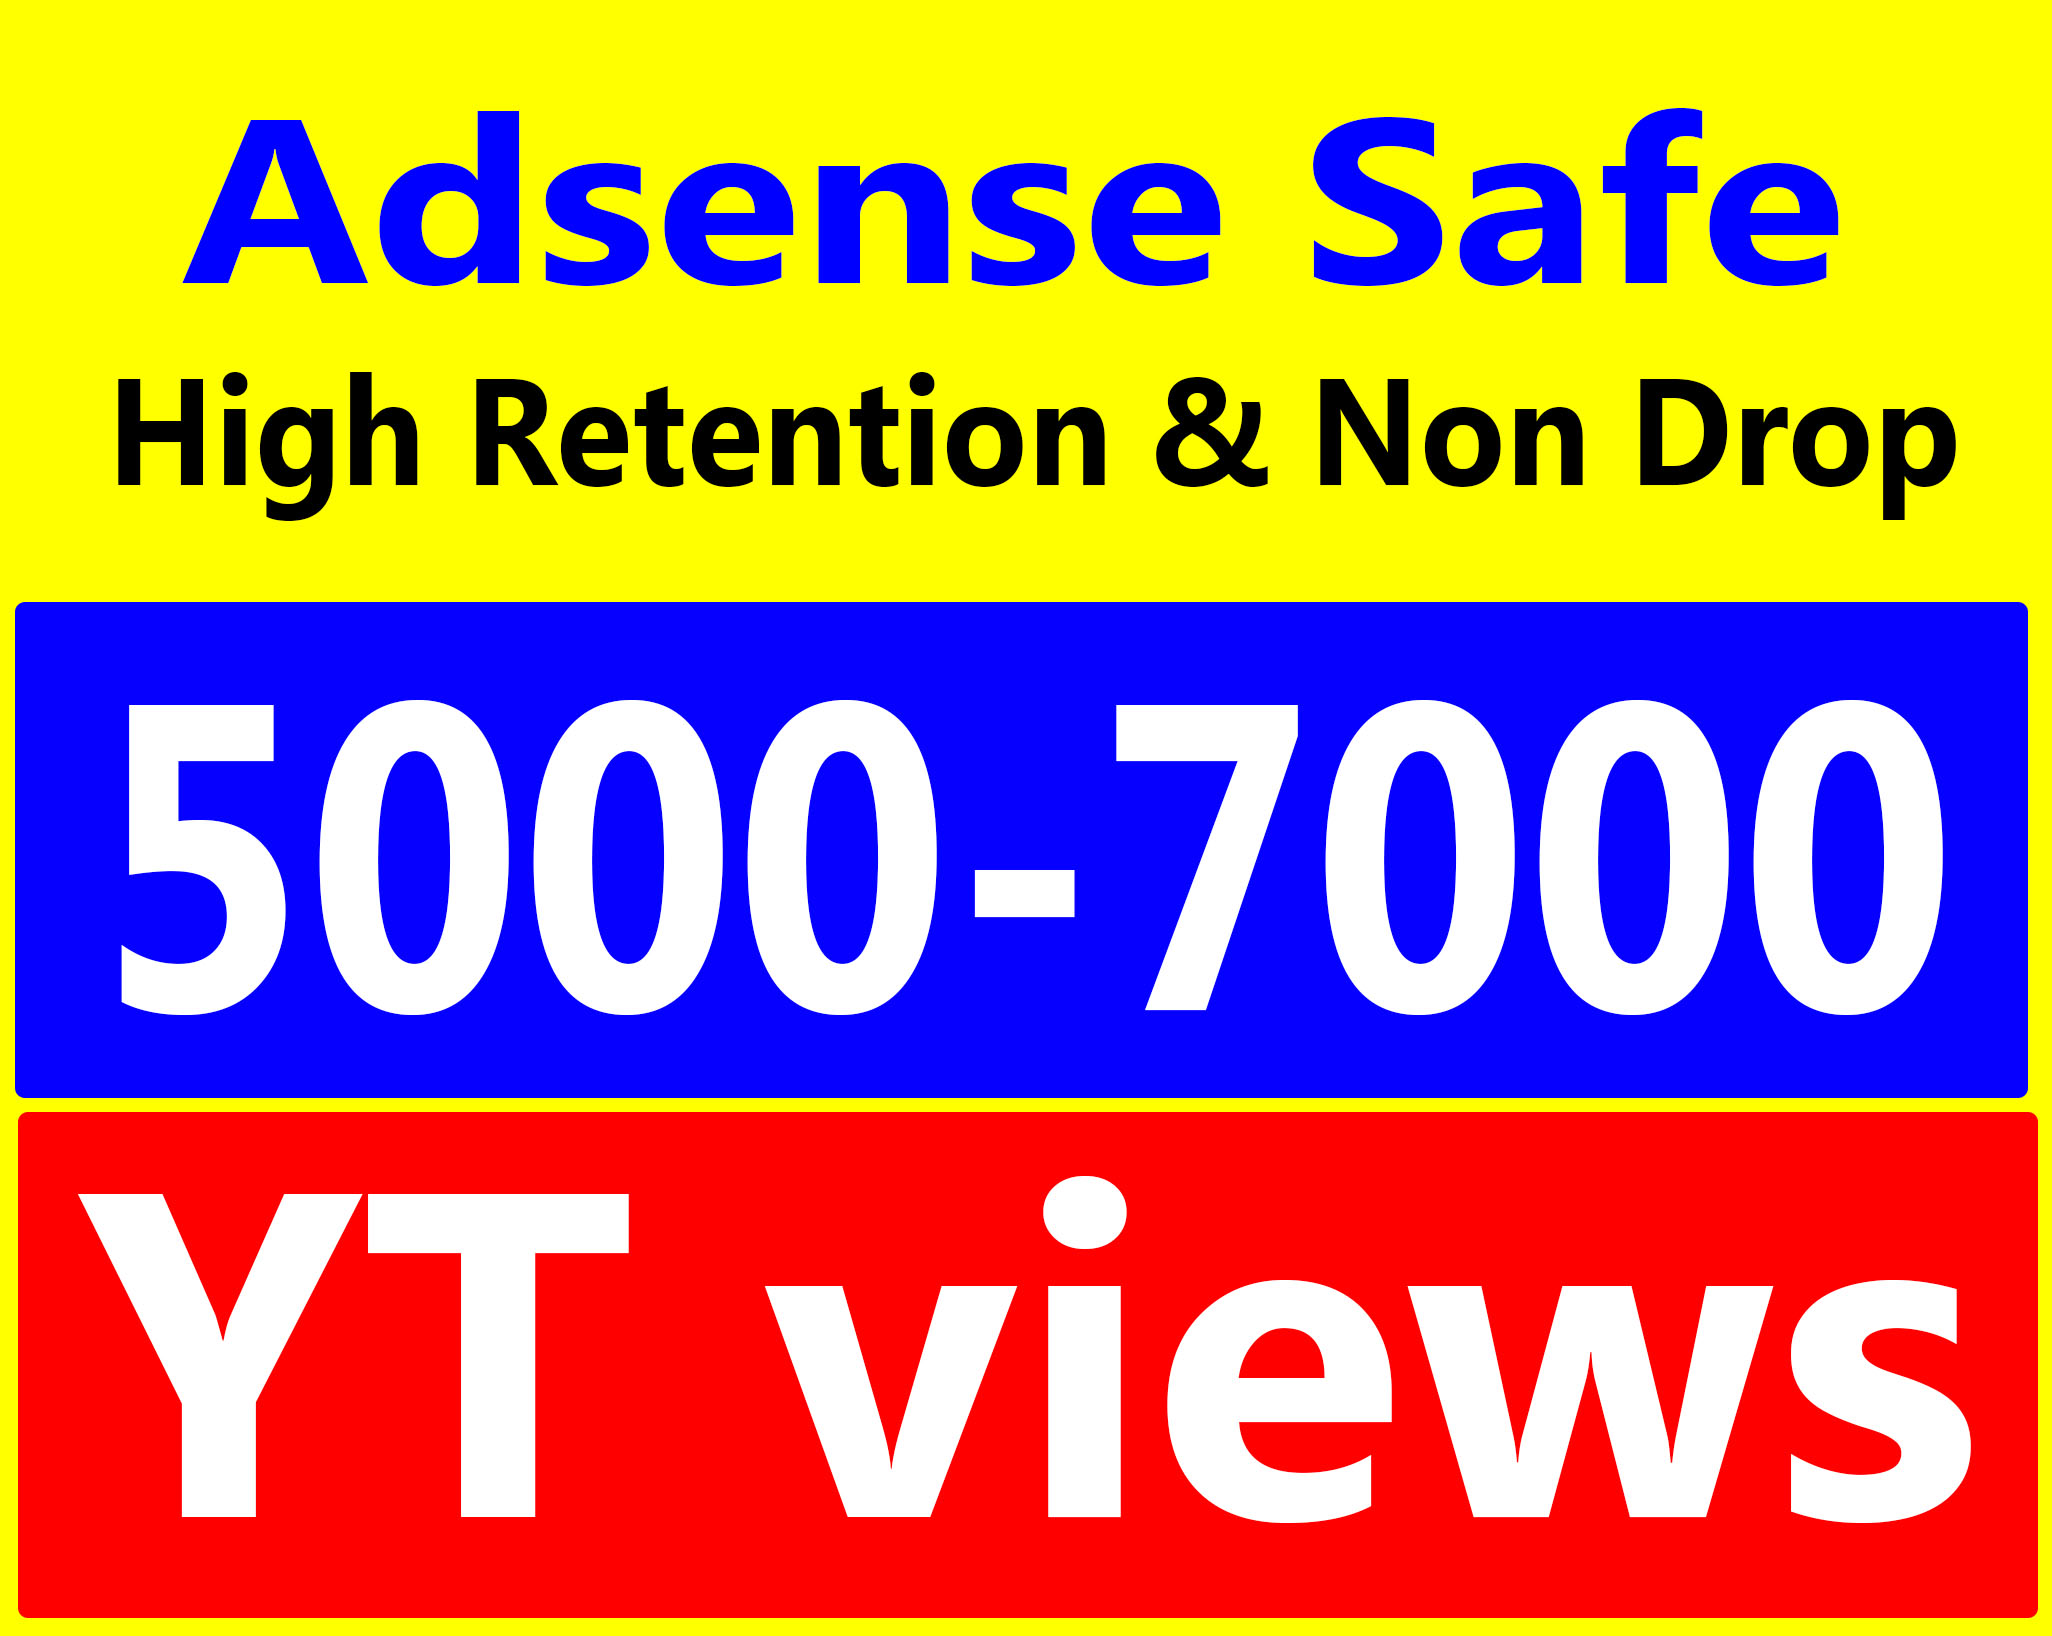 5000 To 7000 Vieews High Retentions Ad-sense Safe, non drop express delivery